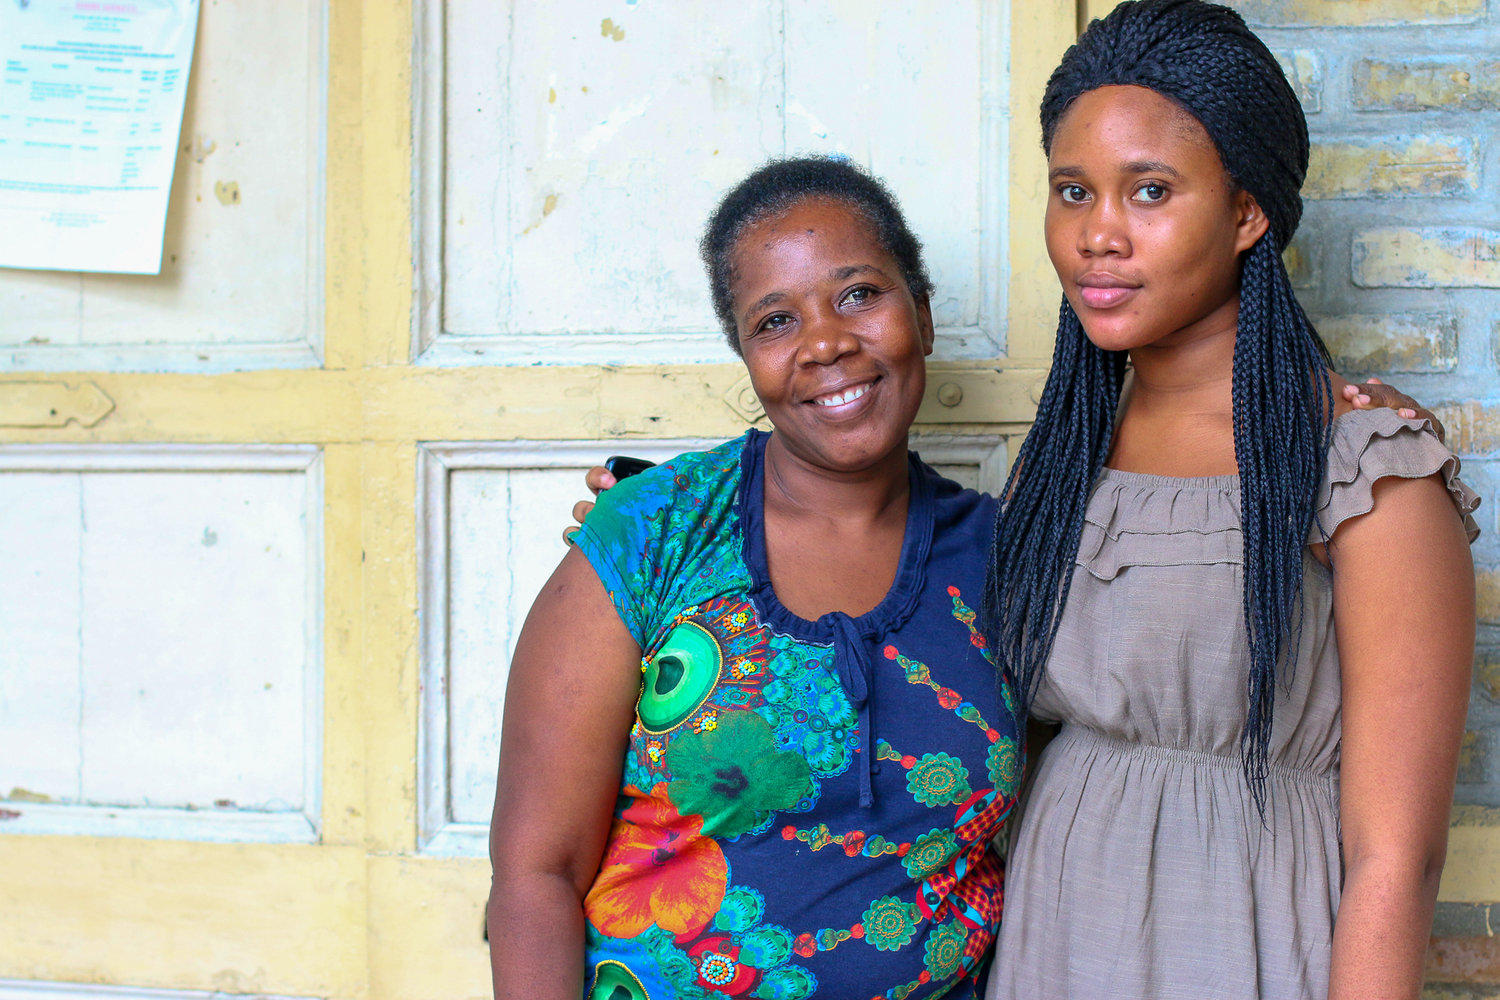 Abigaelle Levasseur (right) with her mother, Manite Levasseur, at SOFA's office in downtown Port-au-Prince.